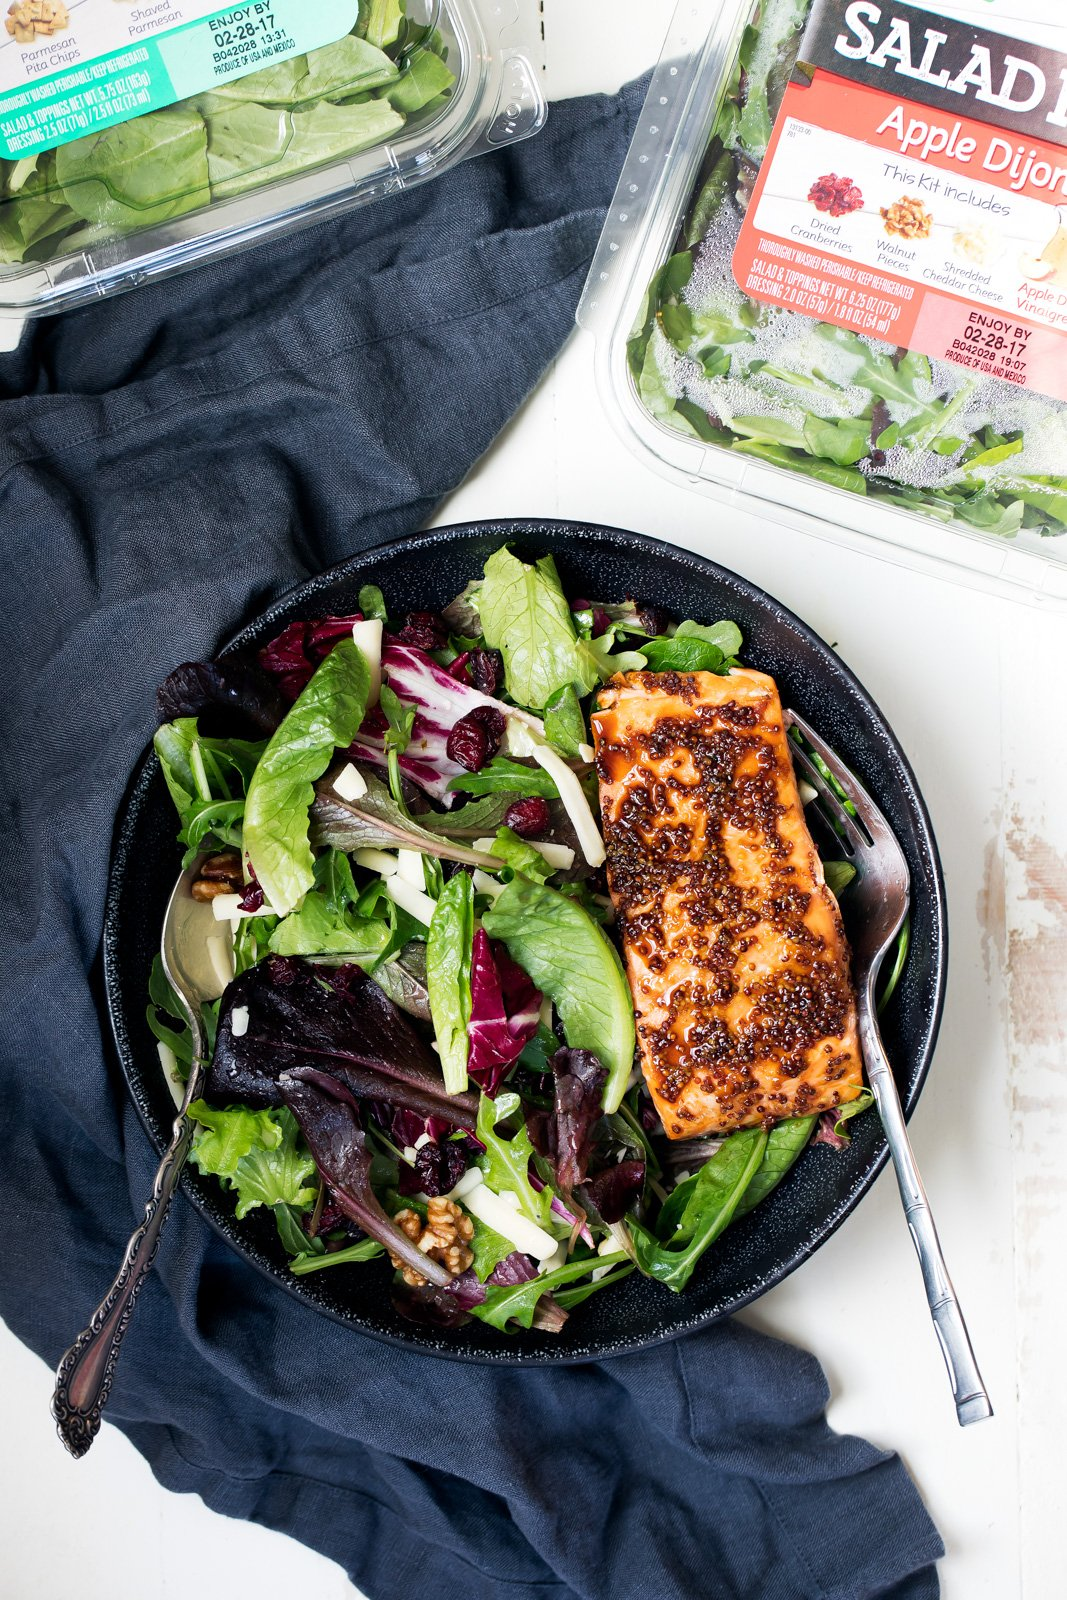 honey garlic salmon over a salad in a bowl next to a salad kit